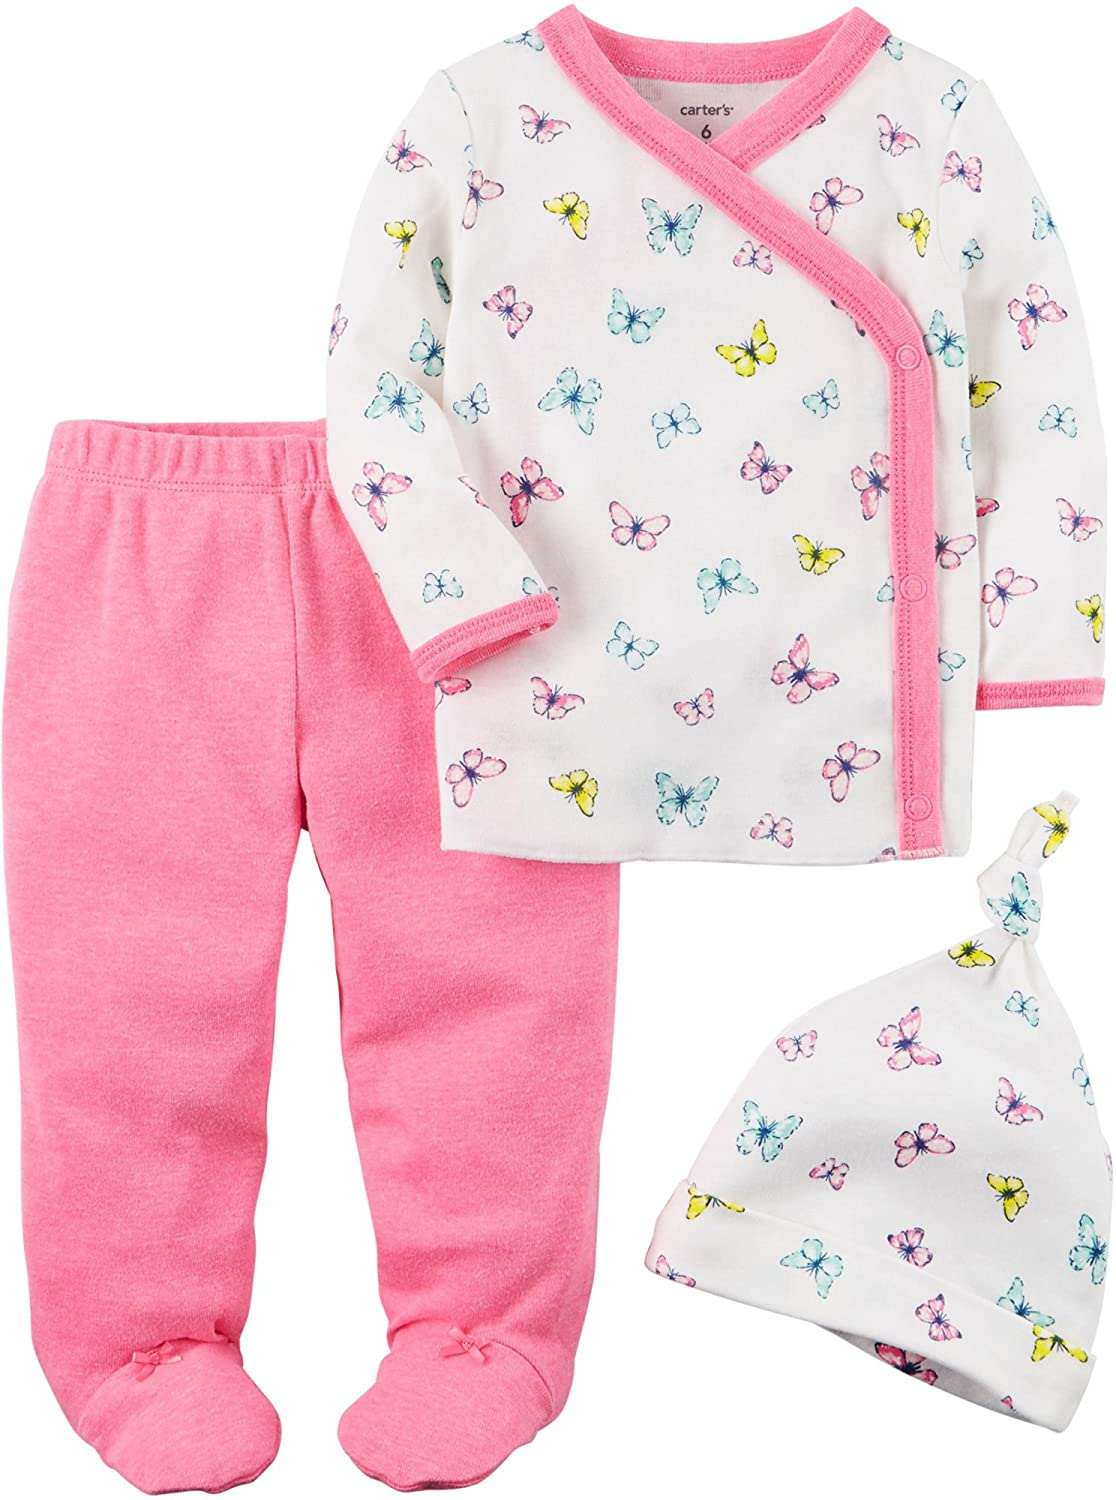 Carter's Baby Girls' 3 Piece Floral Footed Set